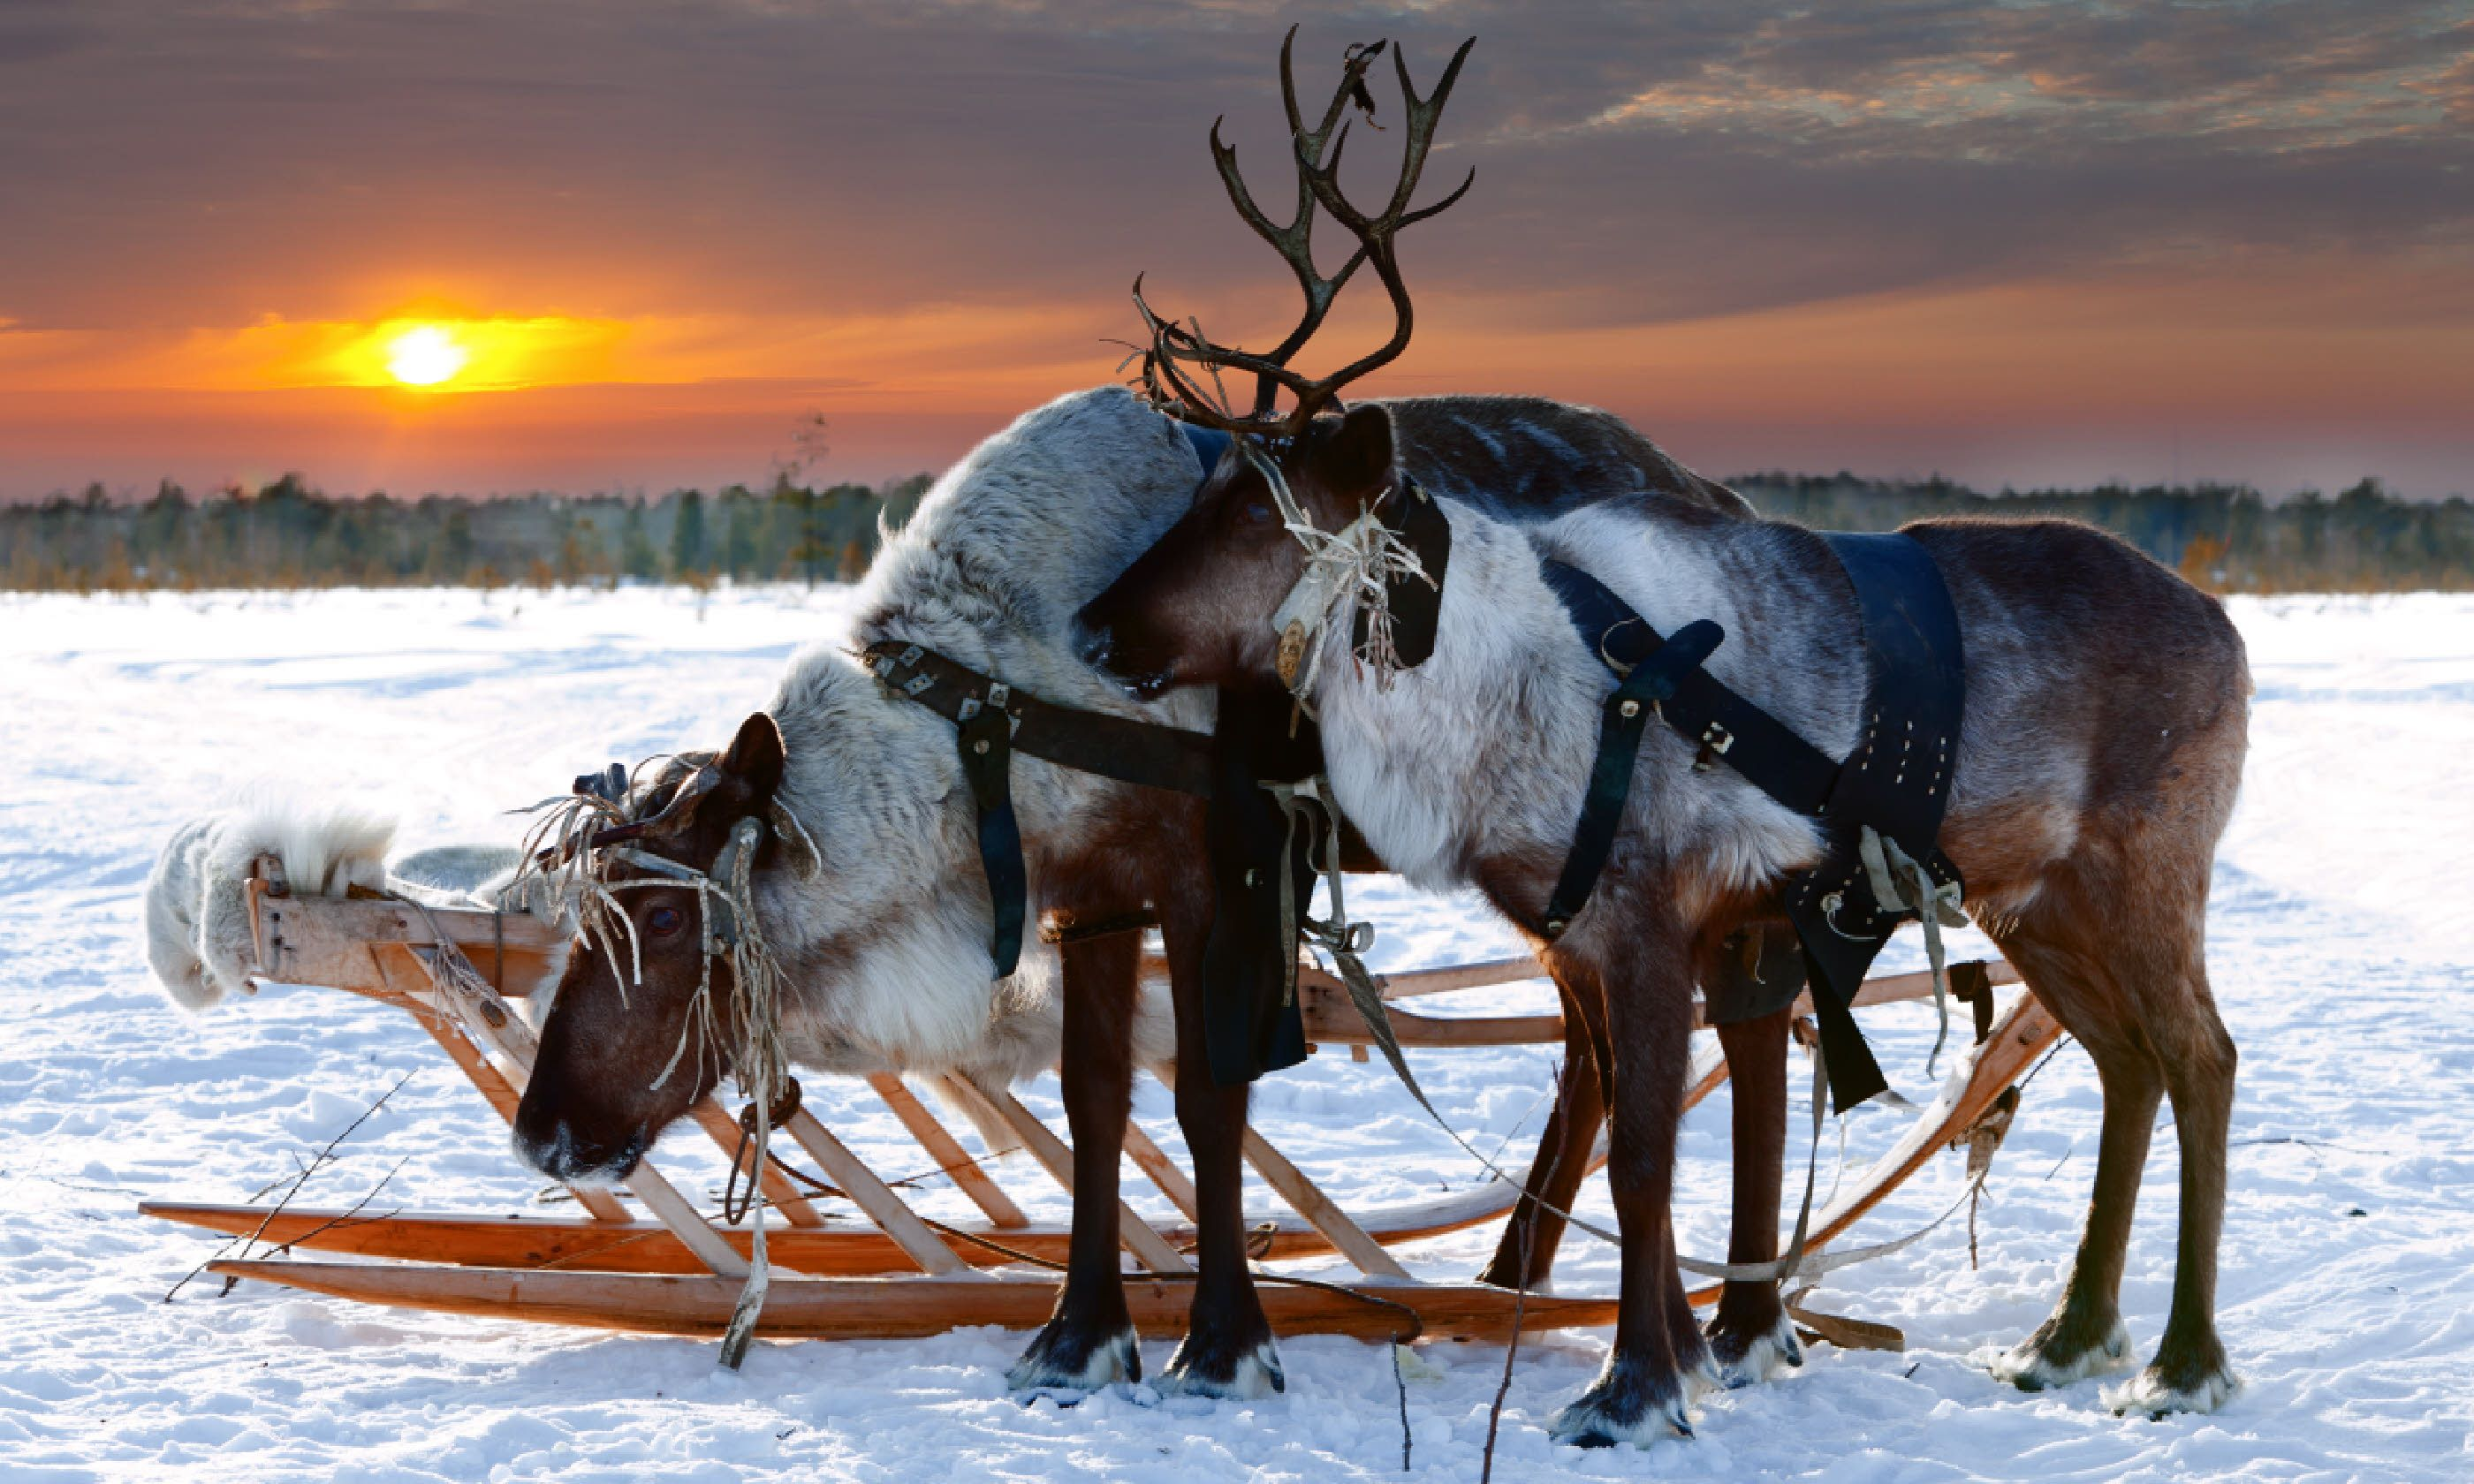 Reindeer in a harness (Shutterstock)